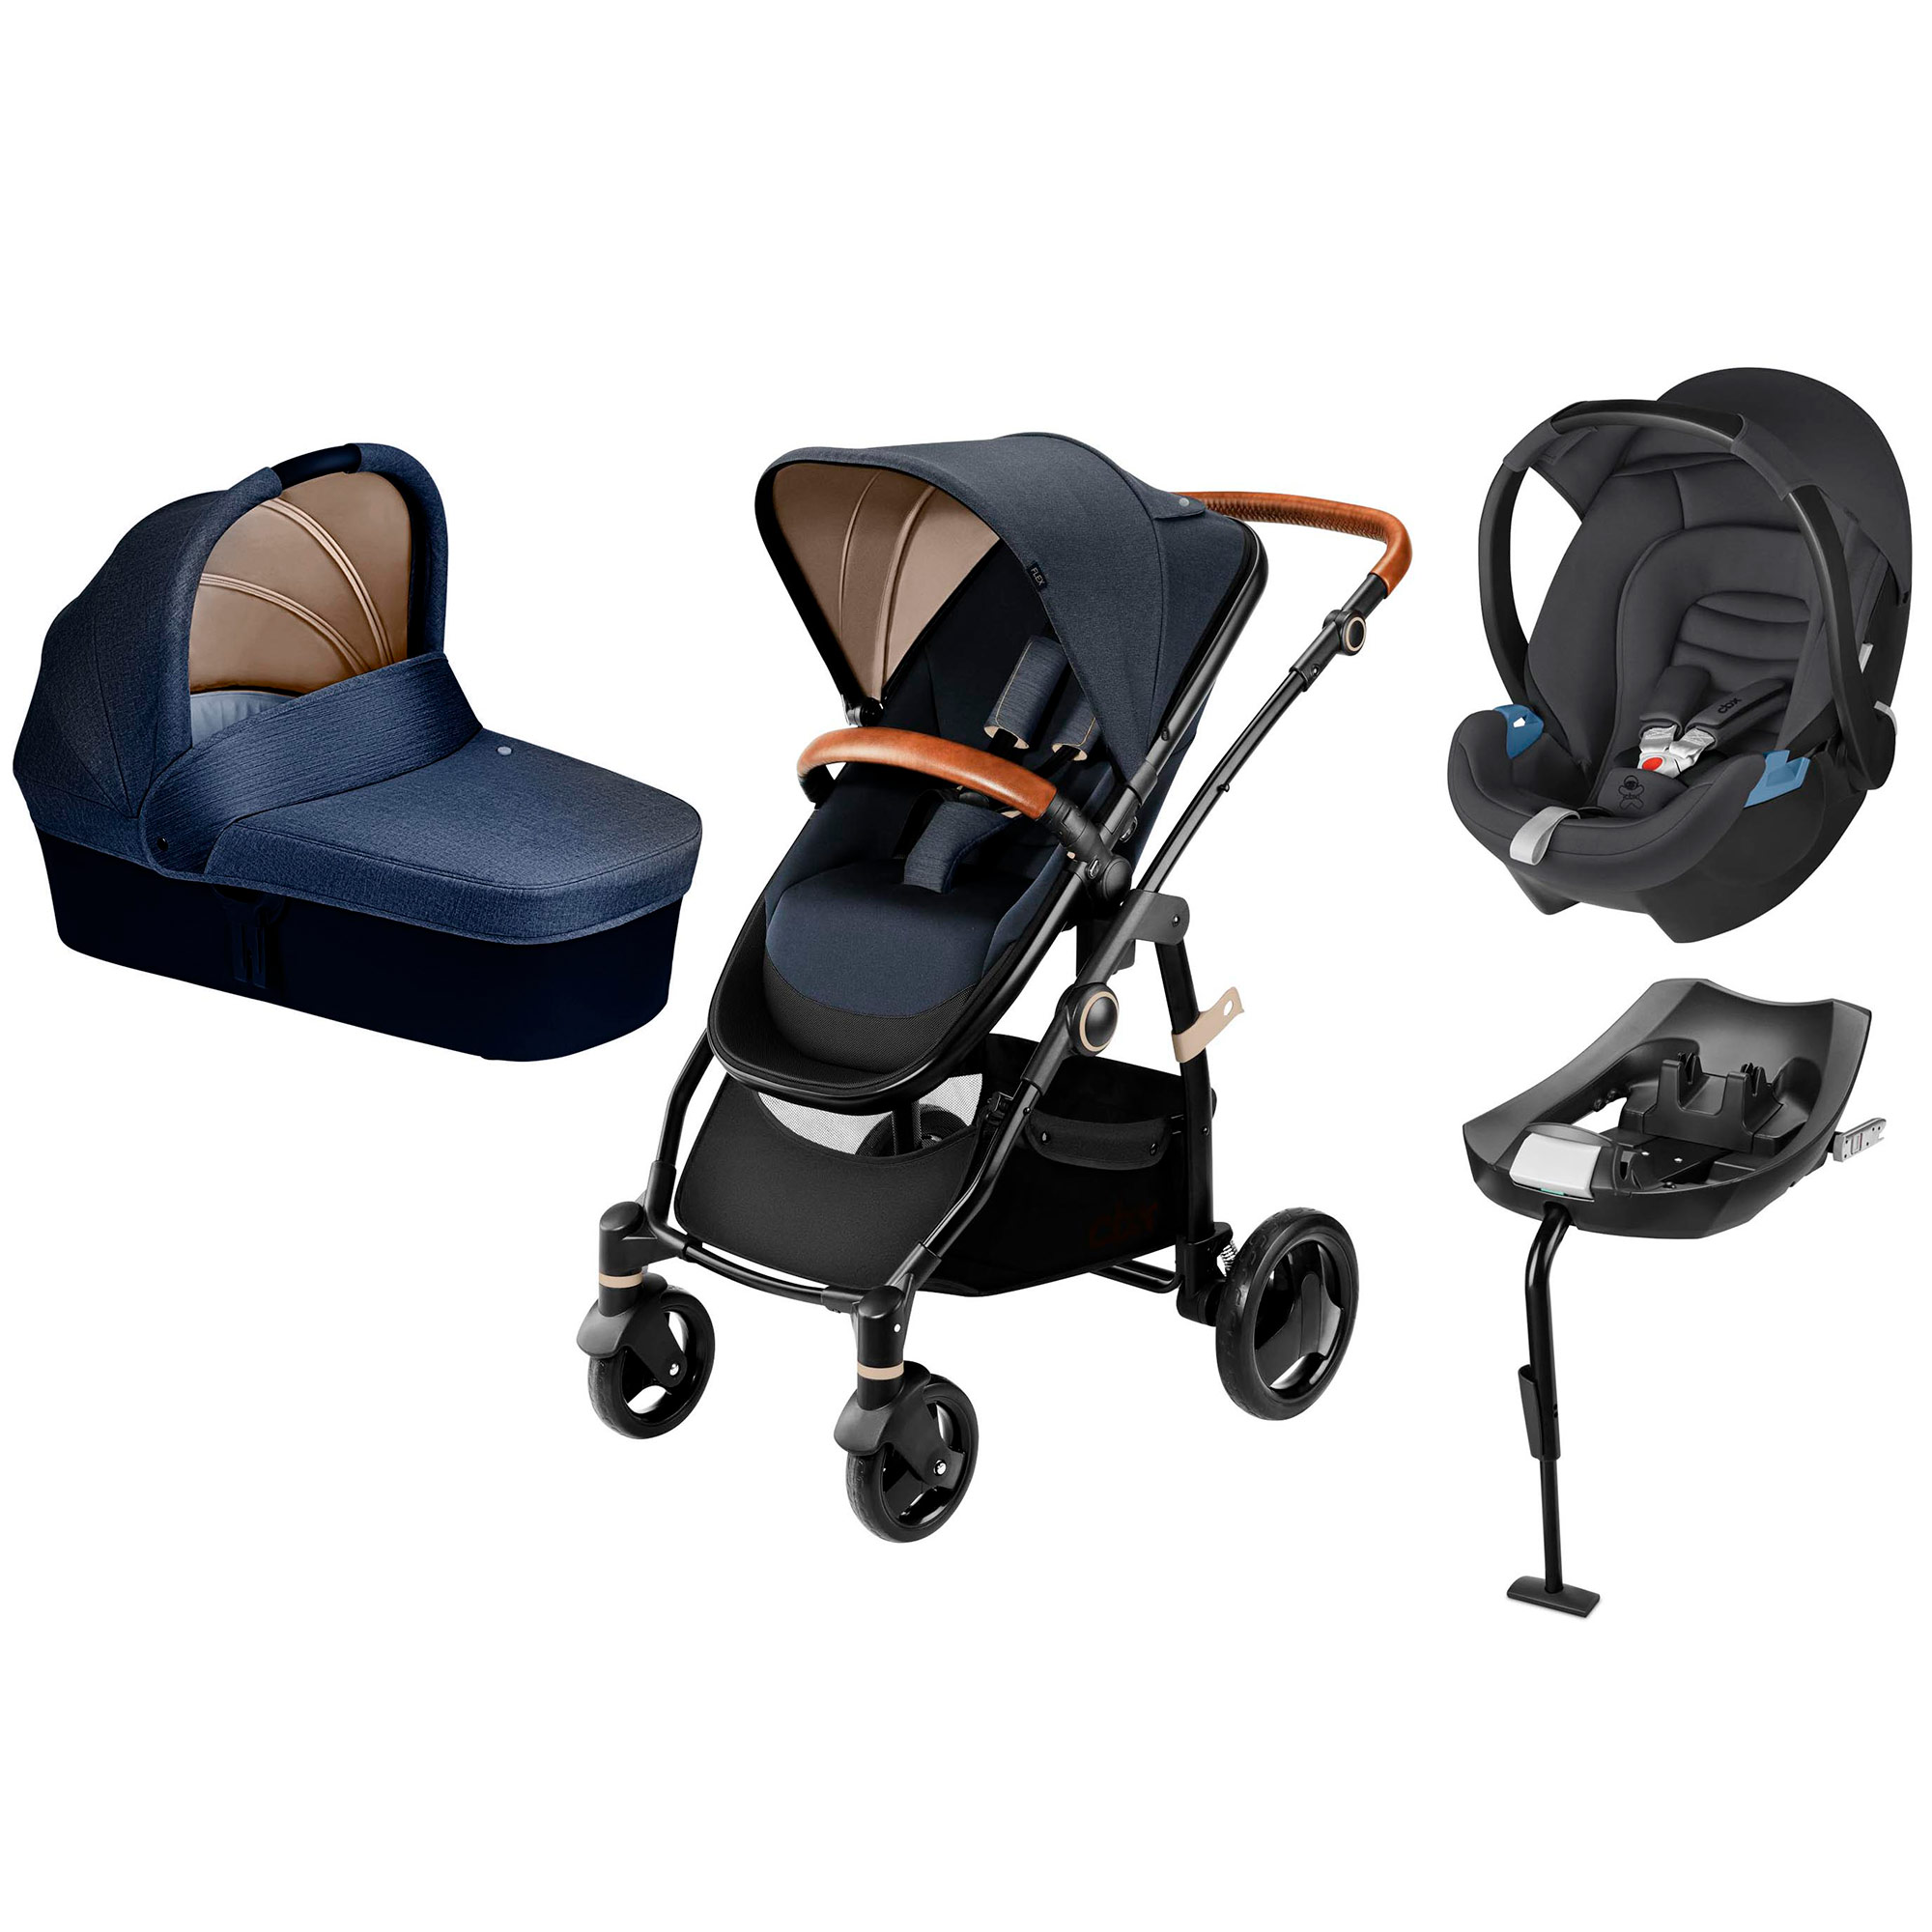 Stroller Travel System Ebay Details About Cbx Leotie Lux Stroller Aton Infant Carrier And Isofix Base Travel System